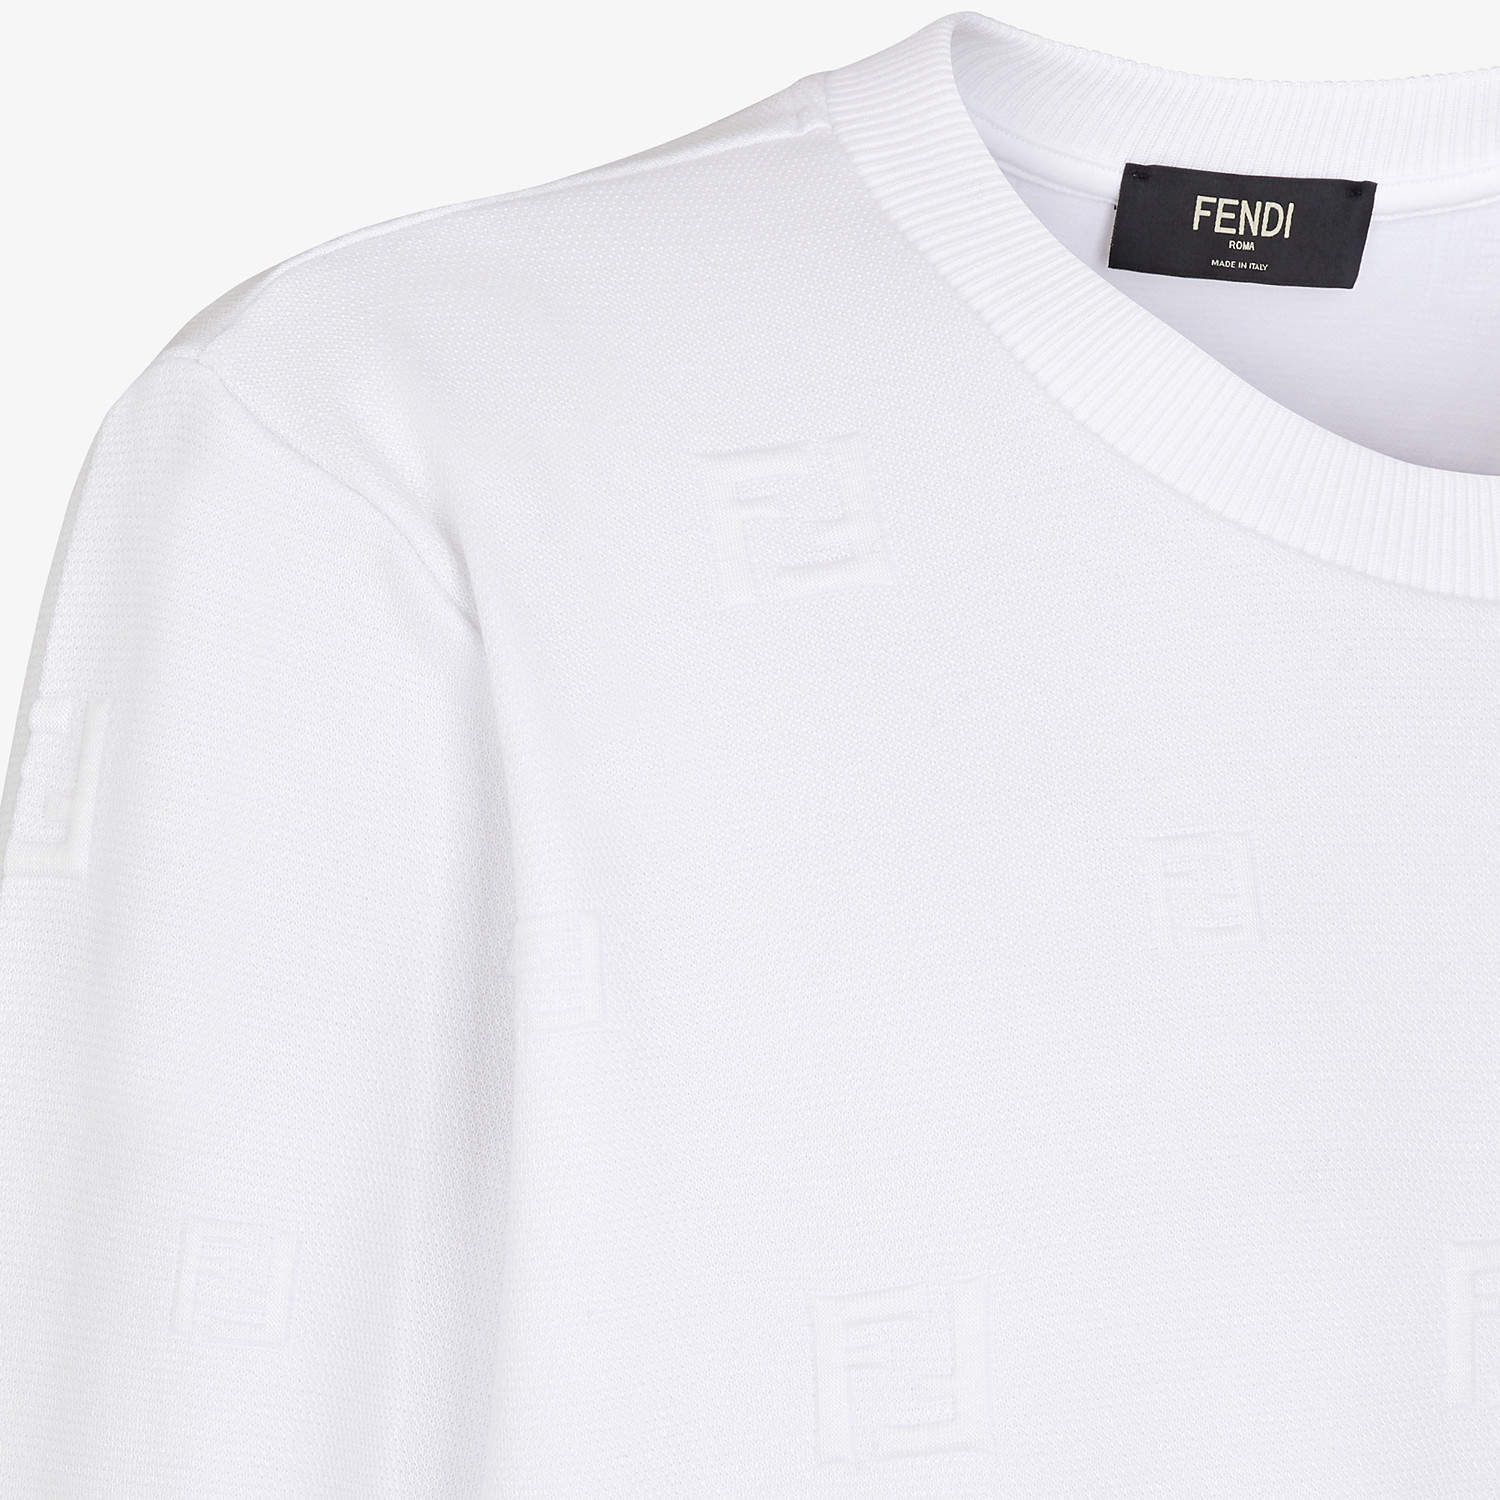 FENDI SWEATSHIRT - White cotton sweatshirt - view 3 detail